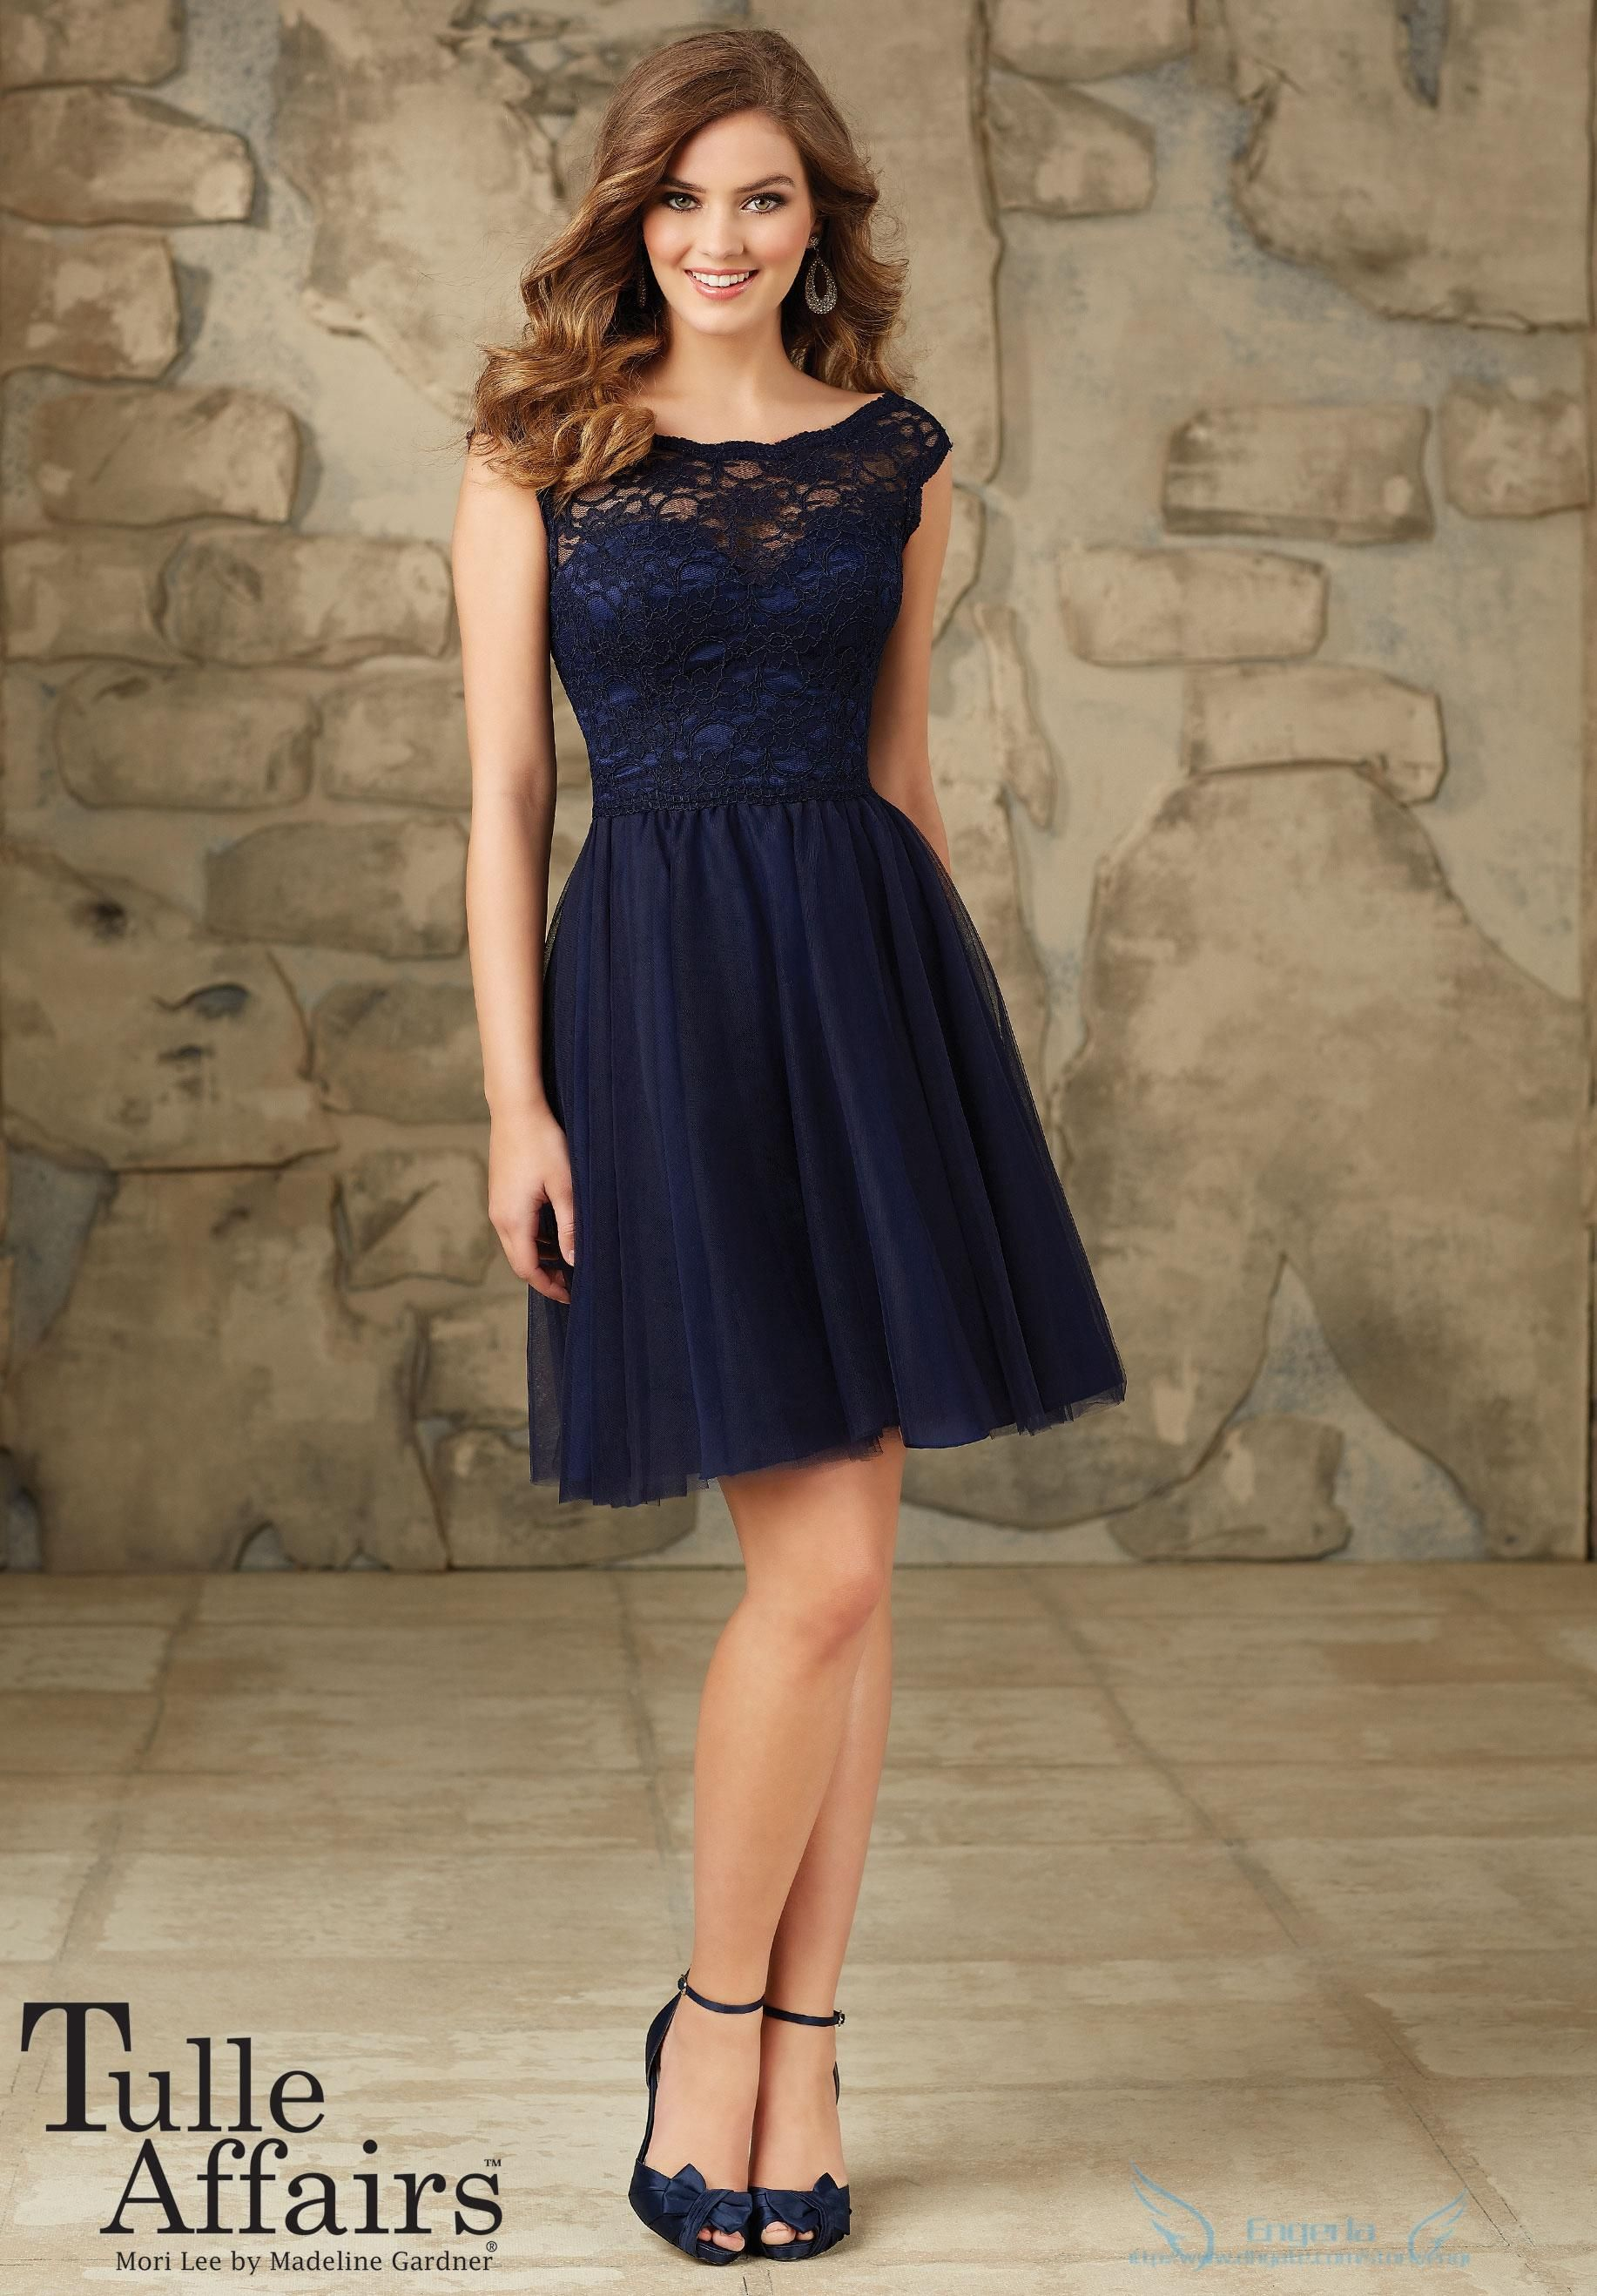 c13022d69b2f Wholesale 2015 Navy Blue Short Bridesmaid Dresses Lace Bodice with Soft  Tulle Knee Length Skirt Backless Beach Maid of Honor Gowns Custom DH06, ...